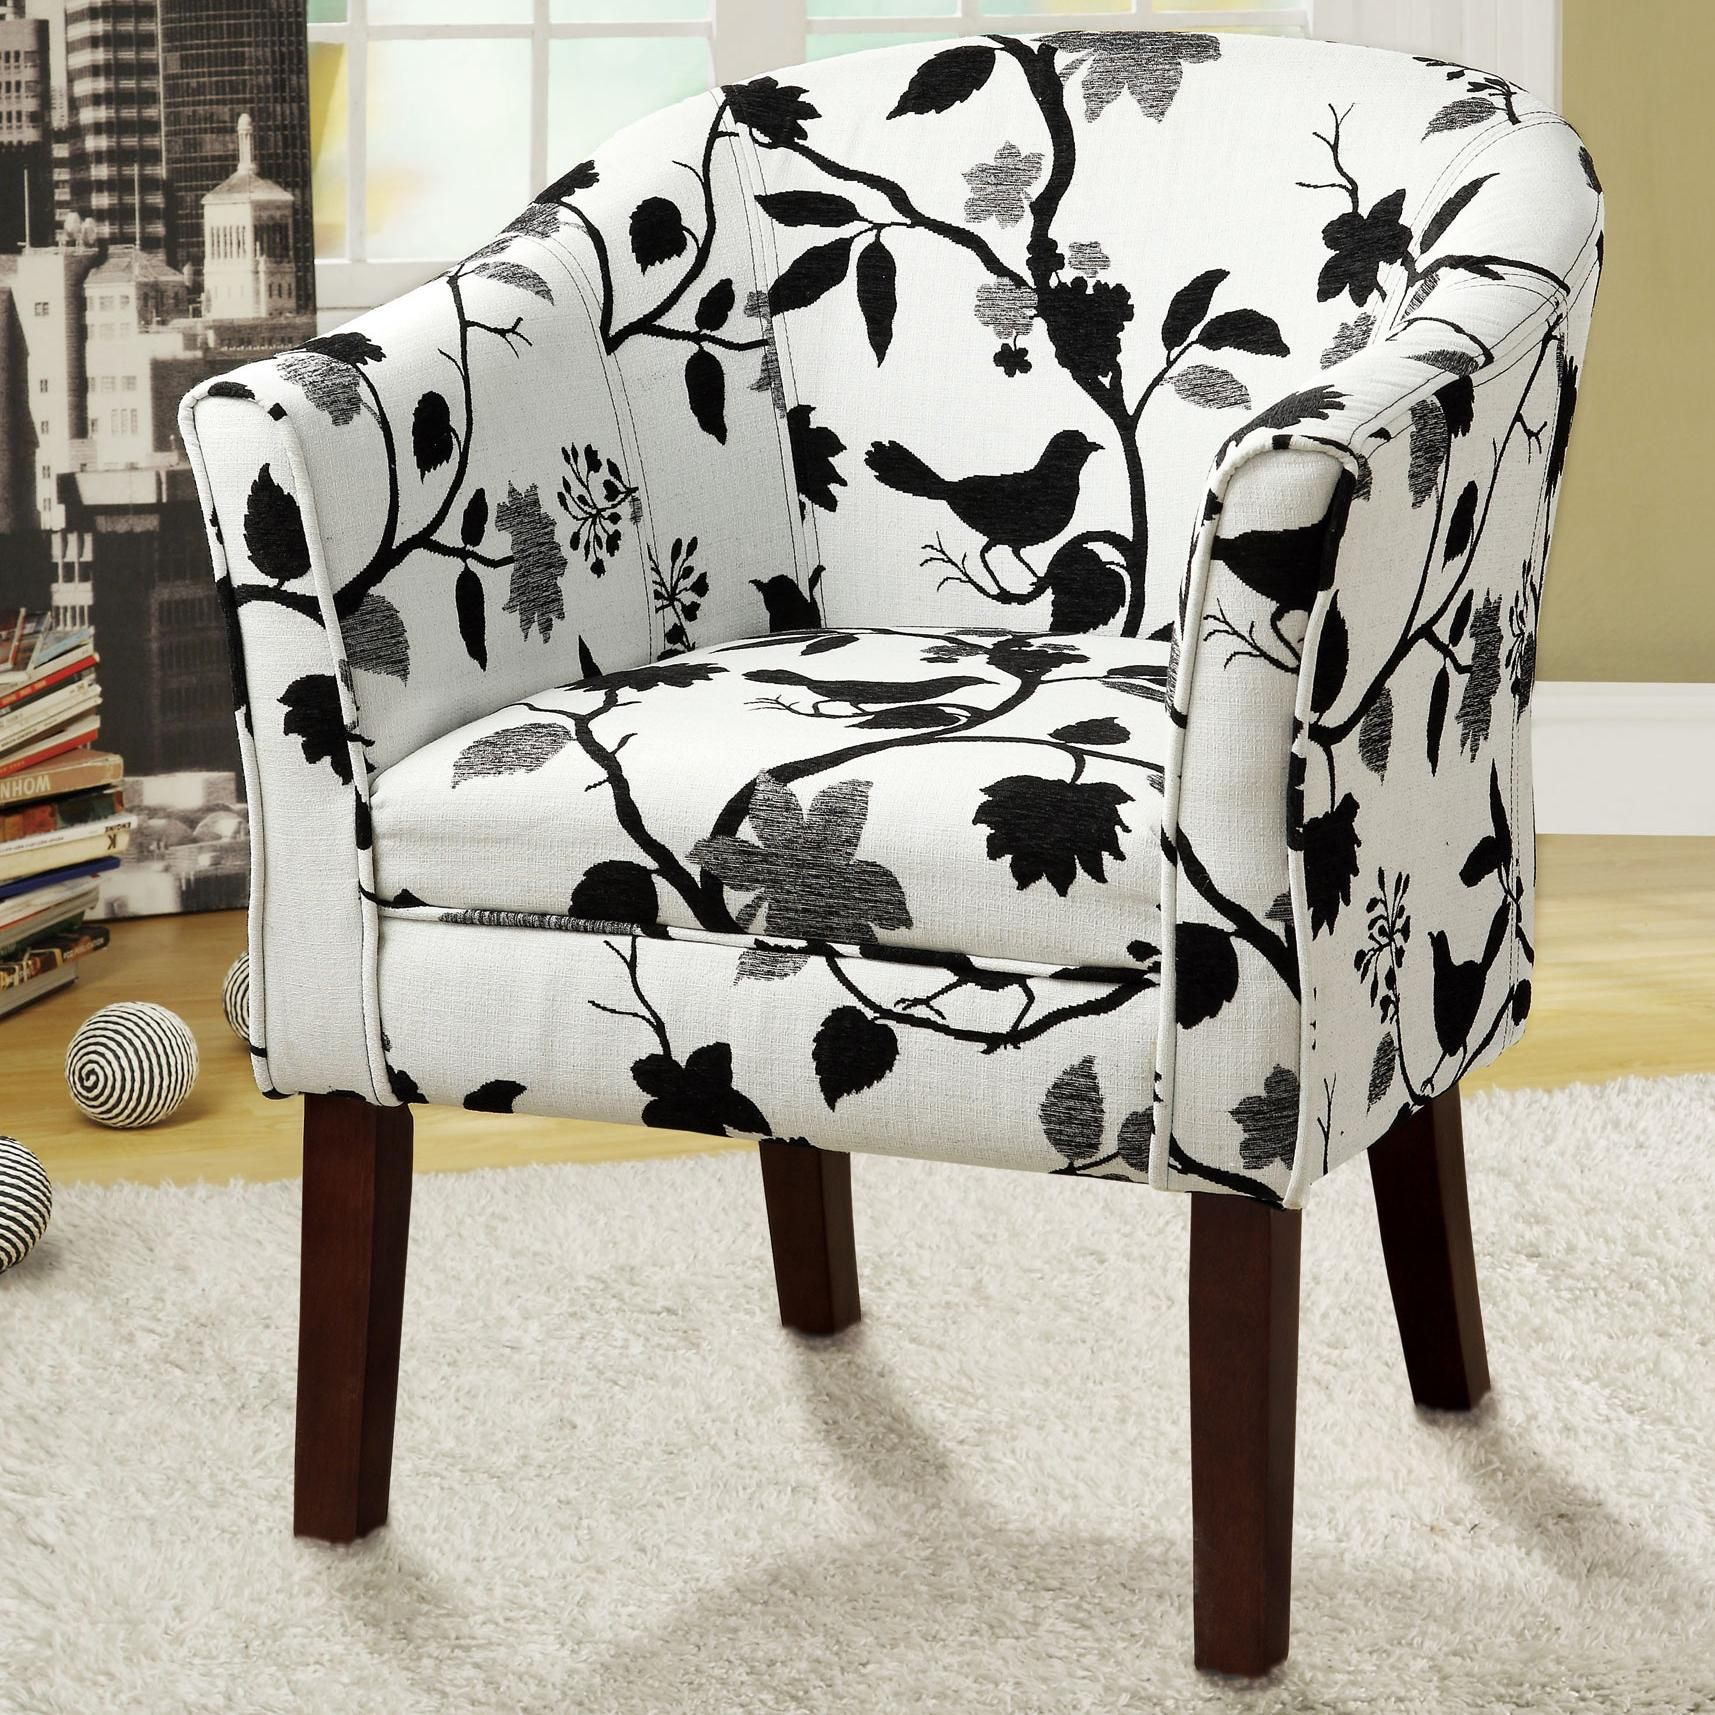 Transitional Accent Arm Chair With White Bird Pattern In Black/White  Upholstery By Coaster Furniture 460406